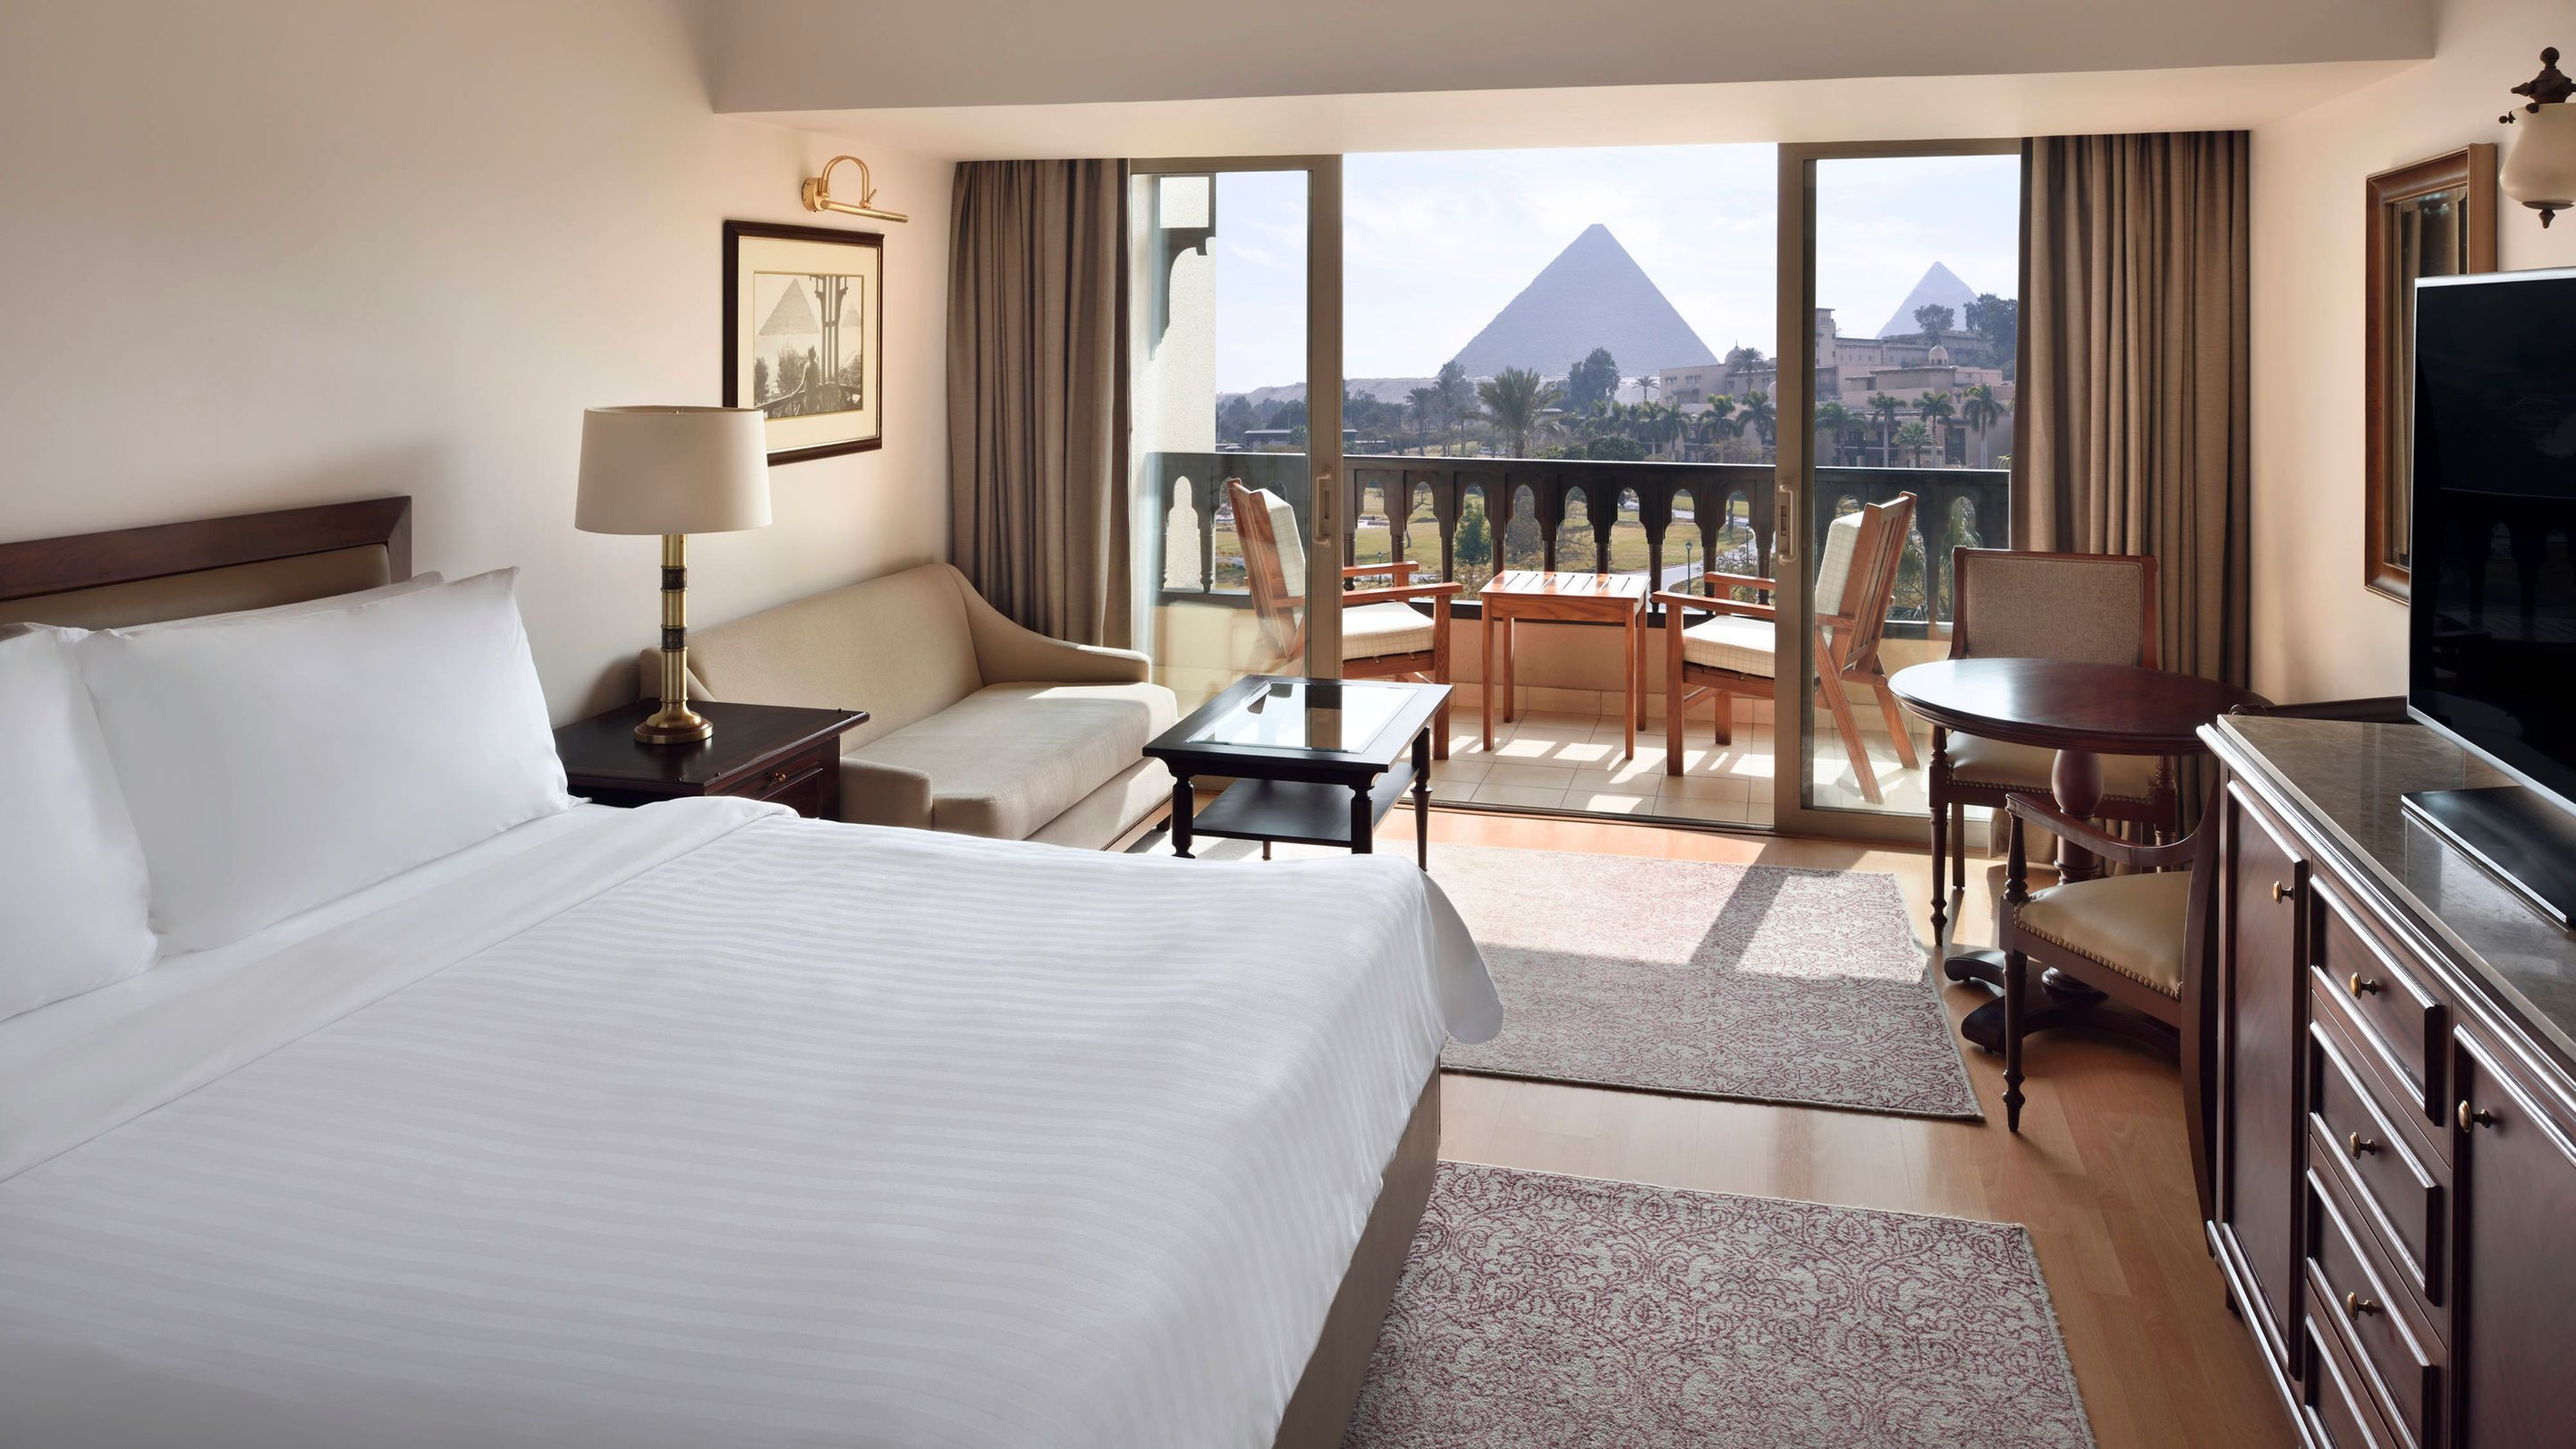 Nine Overwater Bungalows To Escape Your Winter Blues: View Marriott Mena House, Cairo: Hotel Photo Tour Images